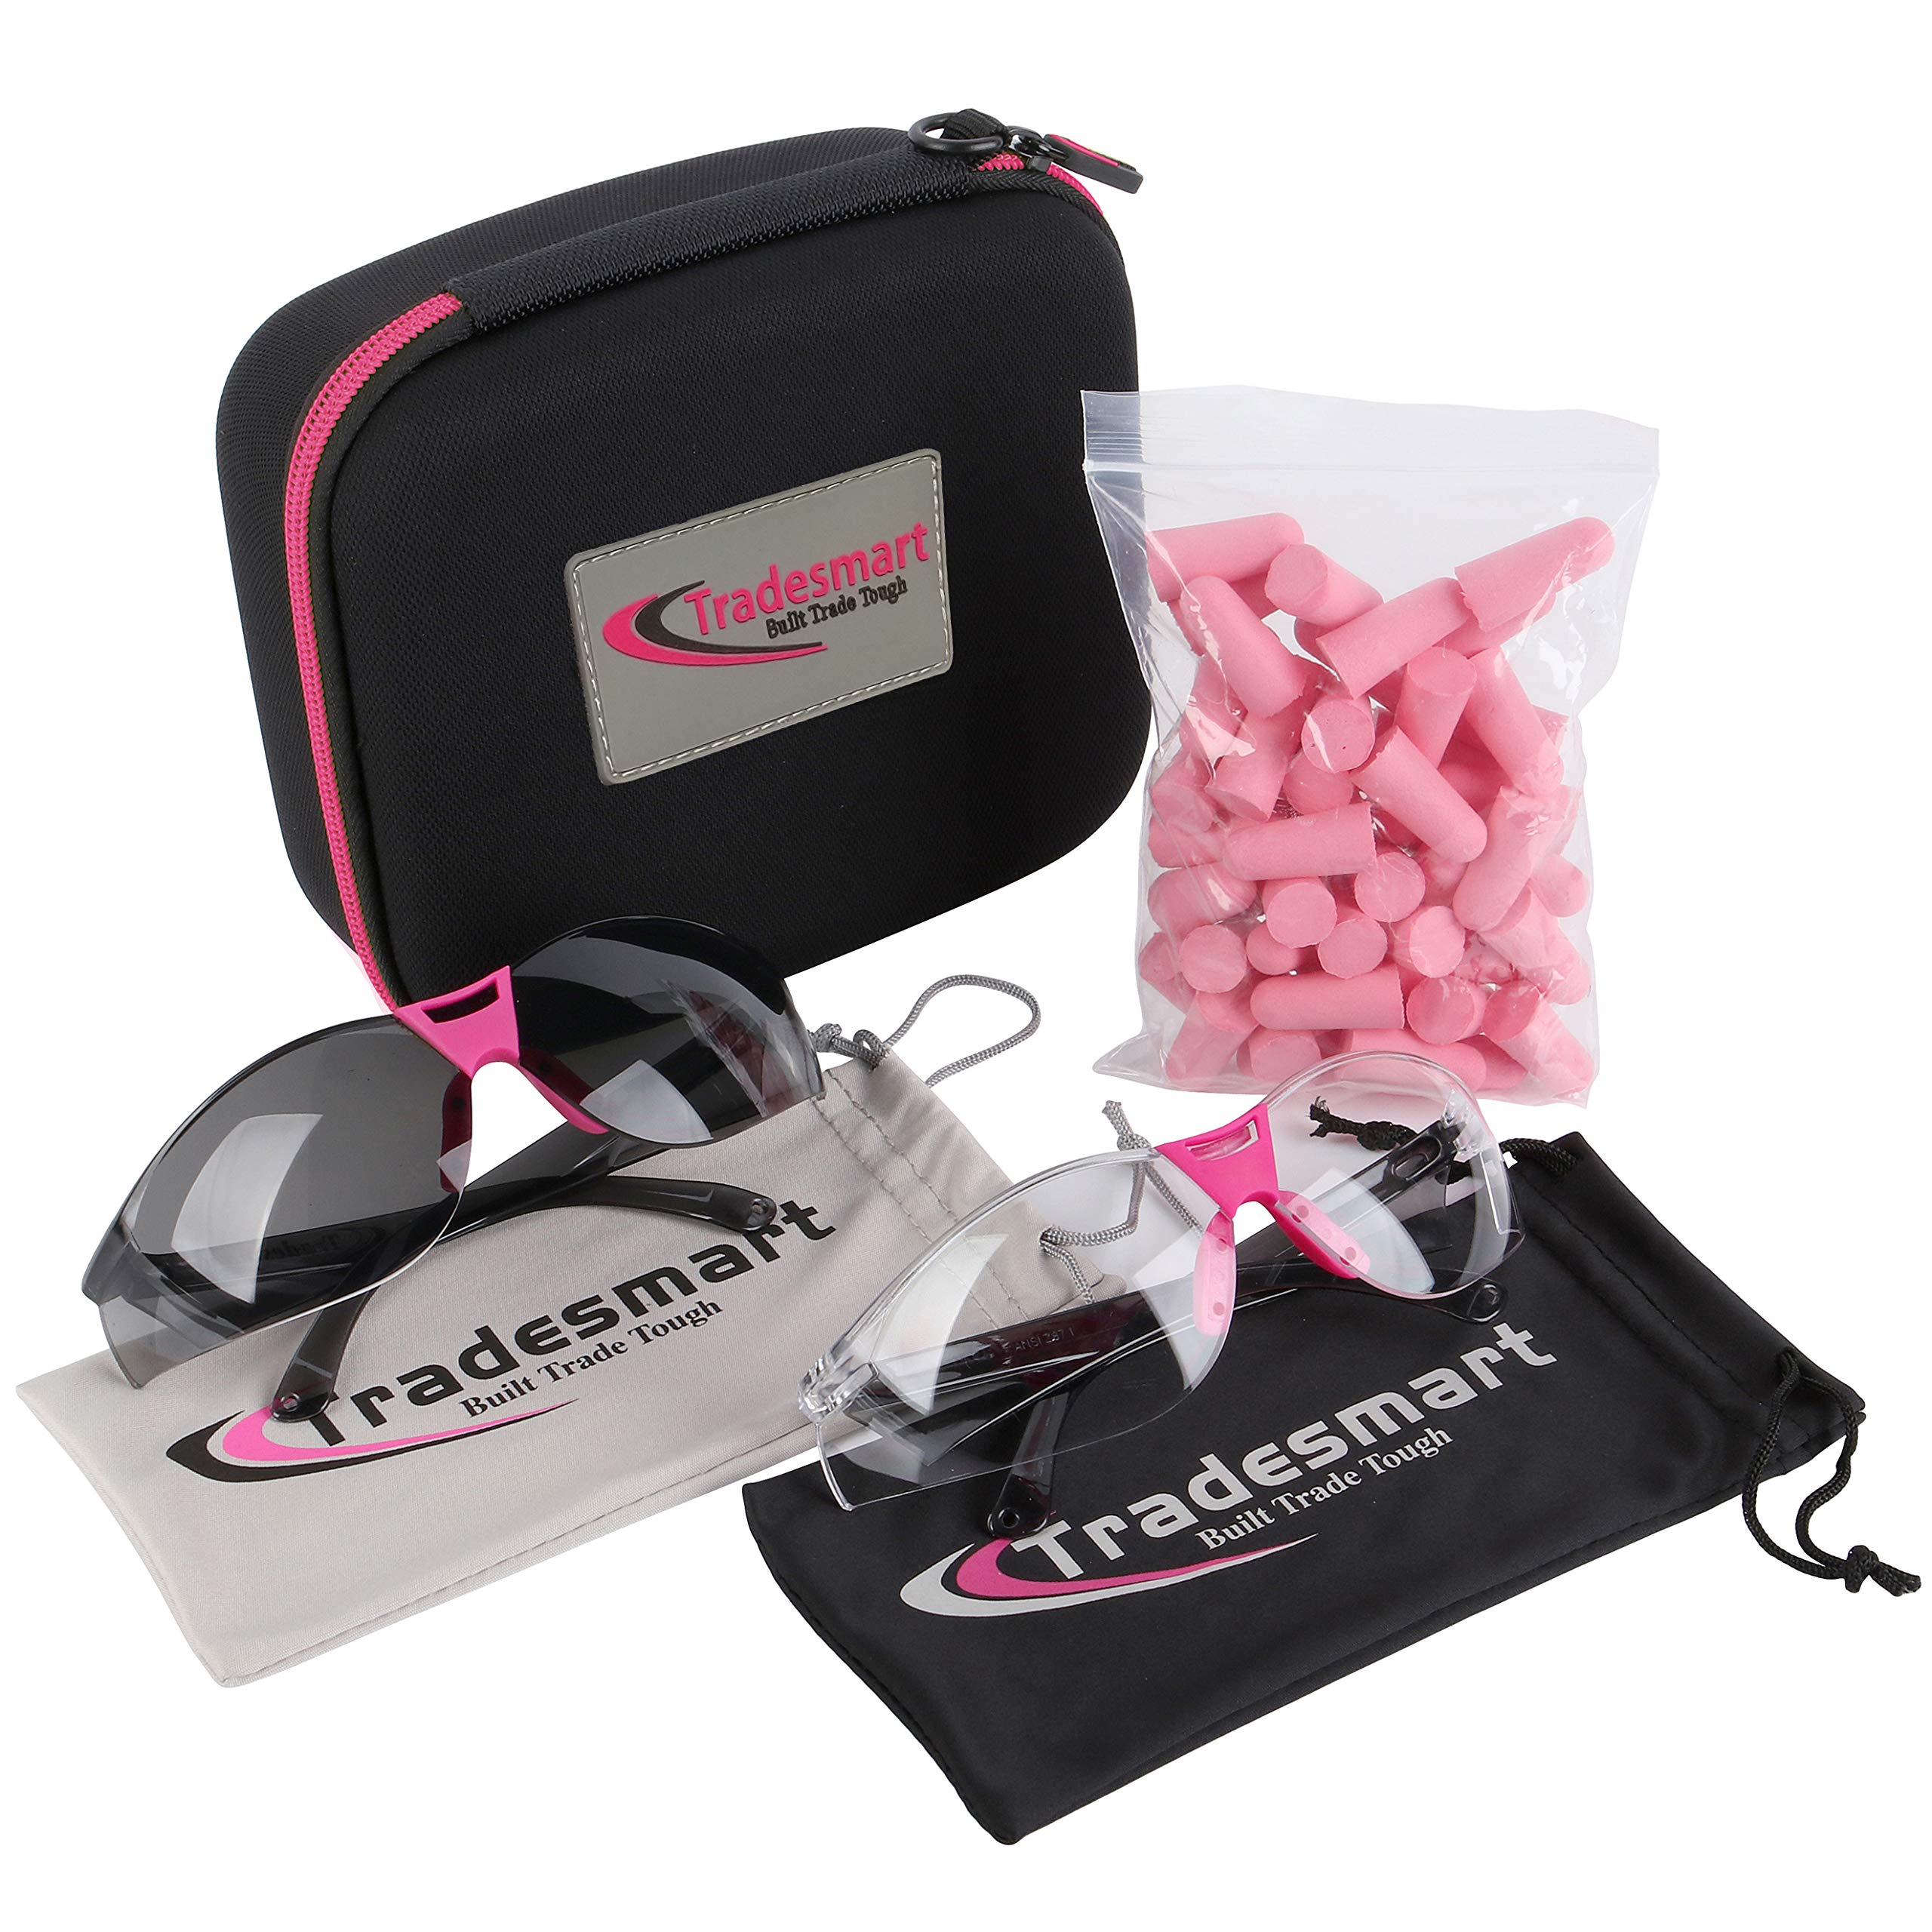 TRADESMART Pink/Clear & Tinted Safety Glasses Pink Pack with NRR33 Earplugs & Protective Case Anti Fog & Anti Scratch Treatment by TRADESMART BUILT TRADE TOUGH